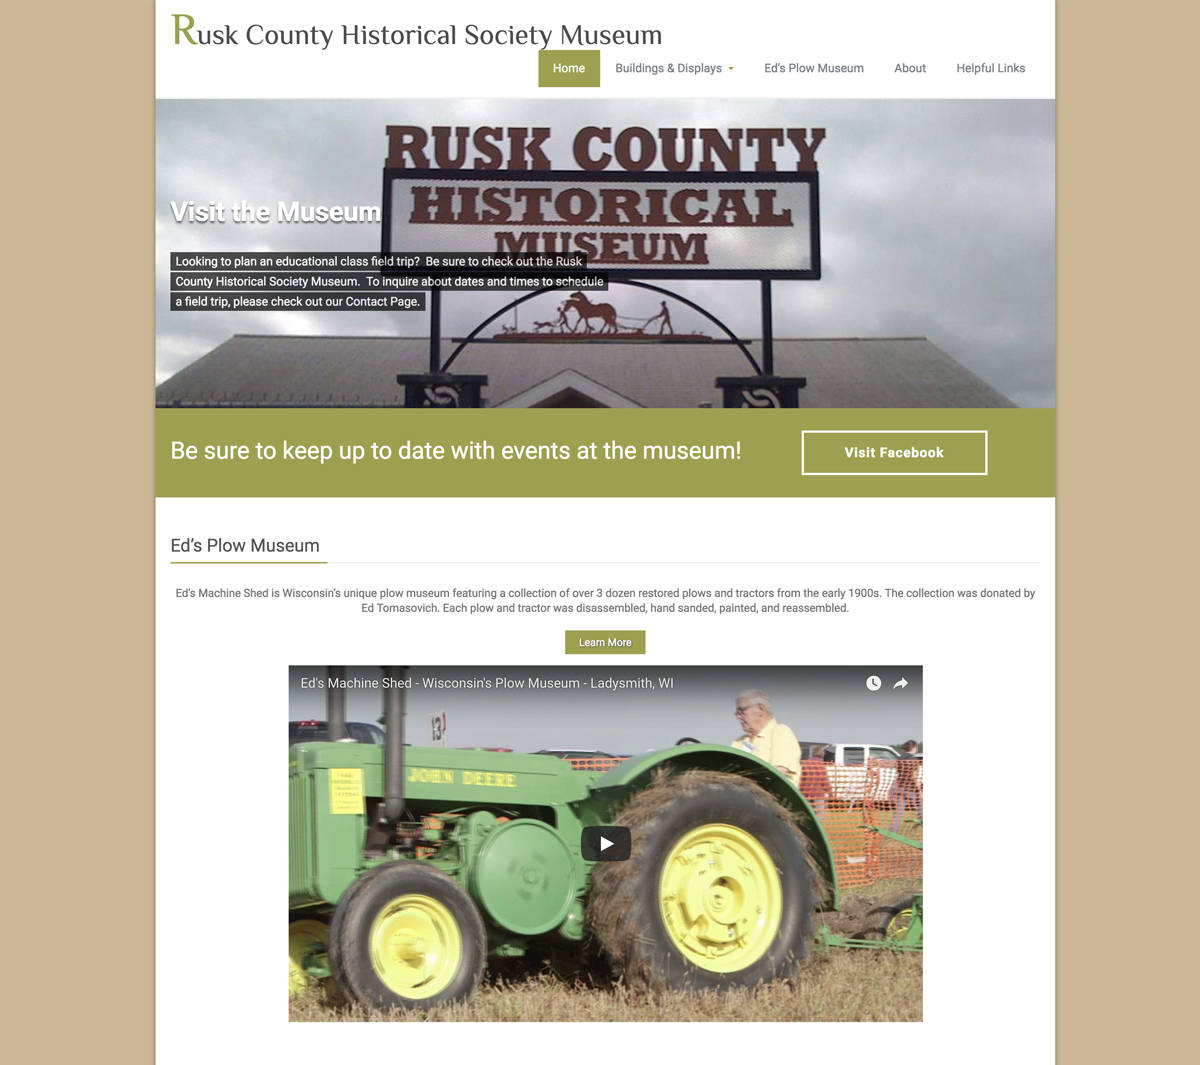 Rusk County Historical Museum